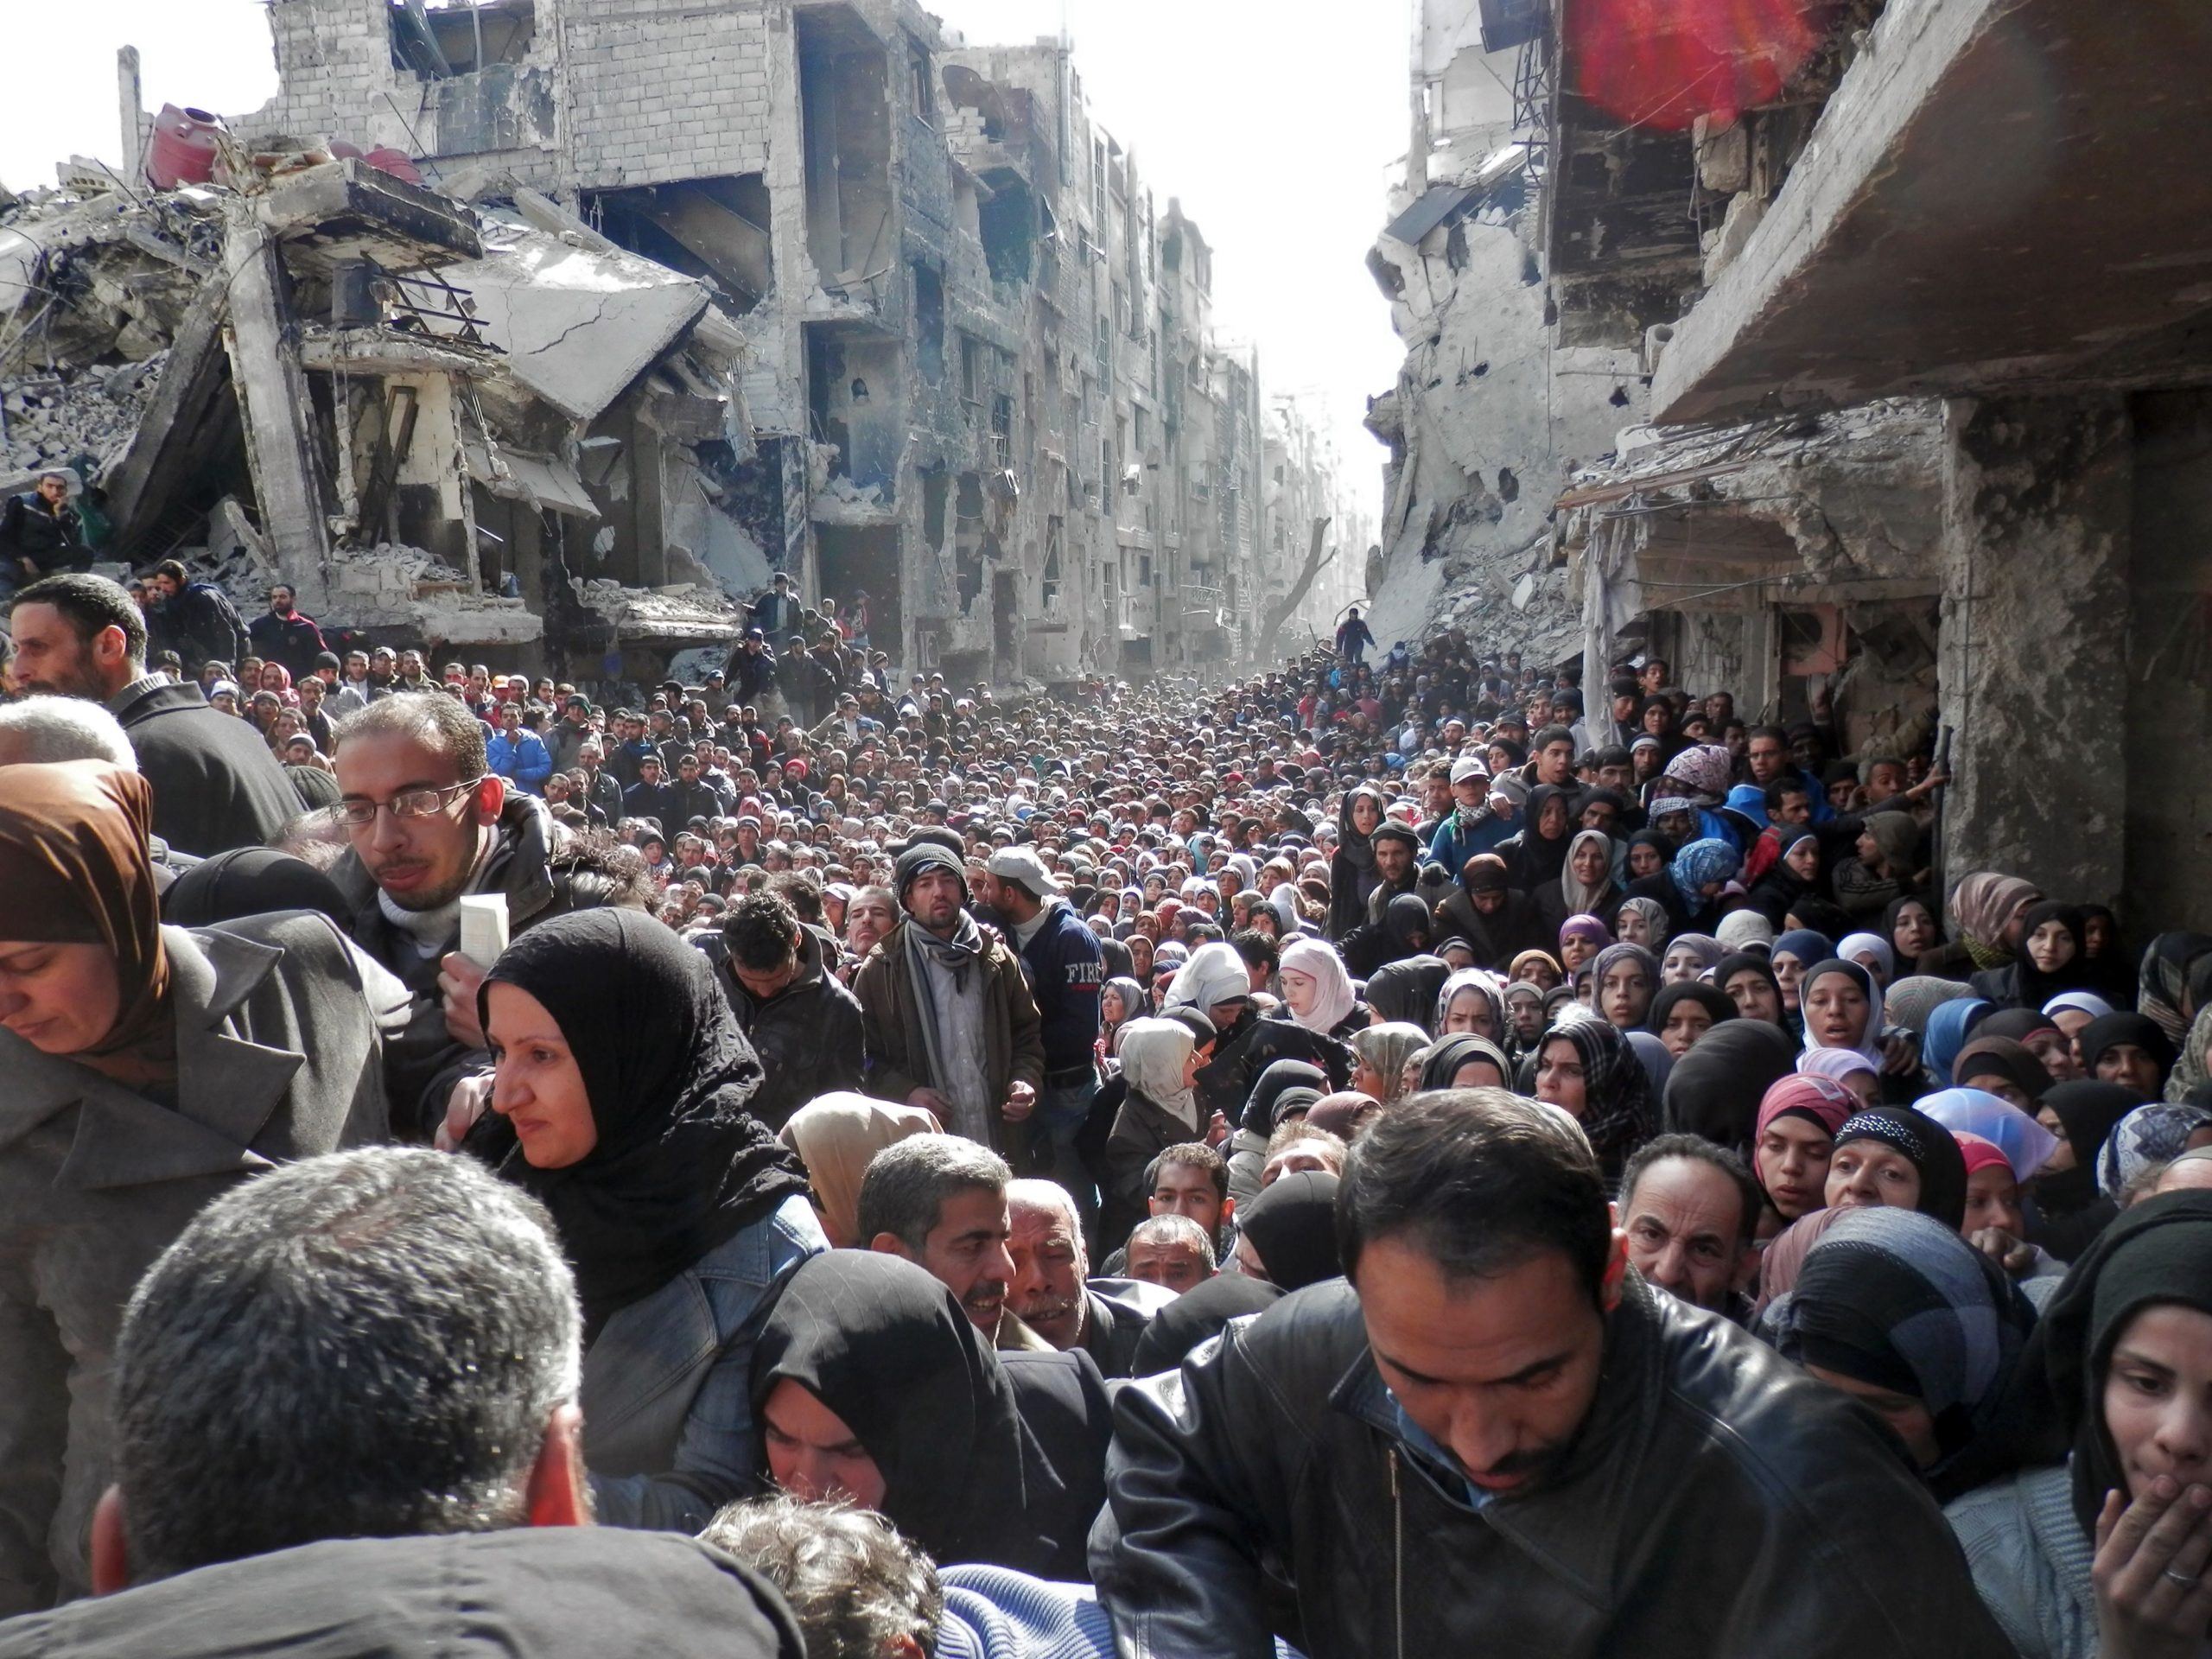 Palestinian refugees waiting for relief aids in the Yarmouk camp - 2014 (Getty Images)